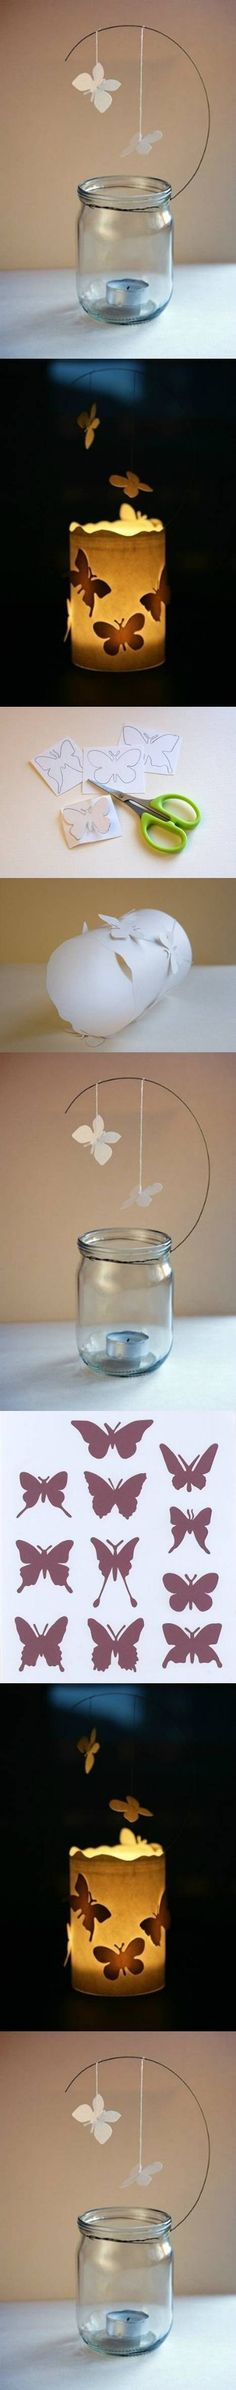 DIY Butterfly Candle Decor Ideas DIY Butterfly Candle Decor Ideas